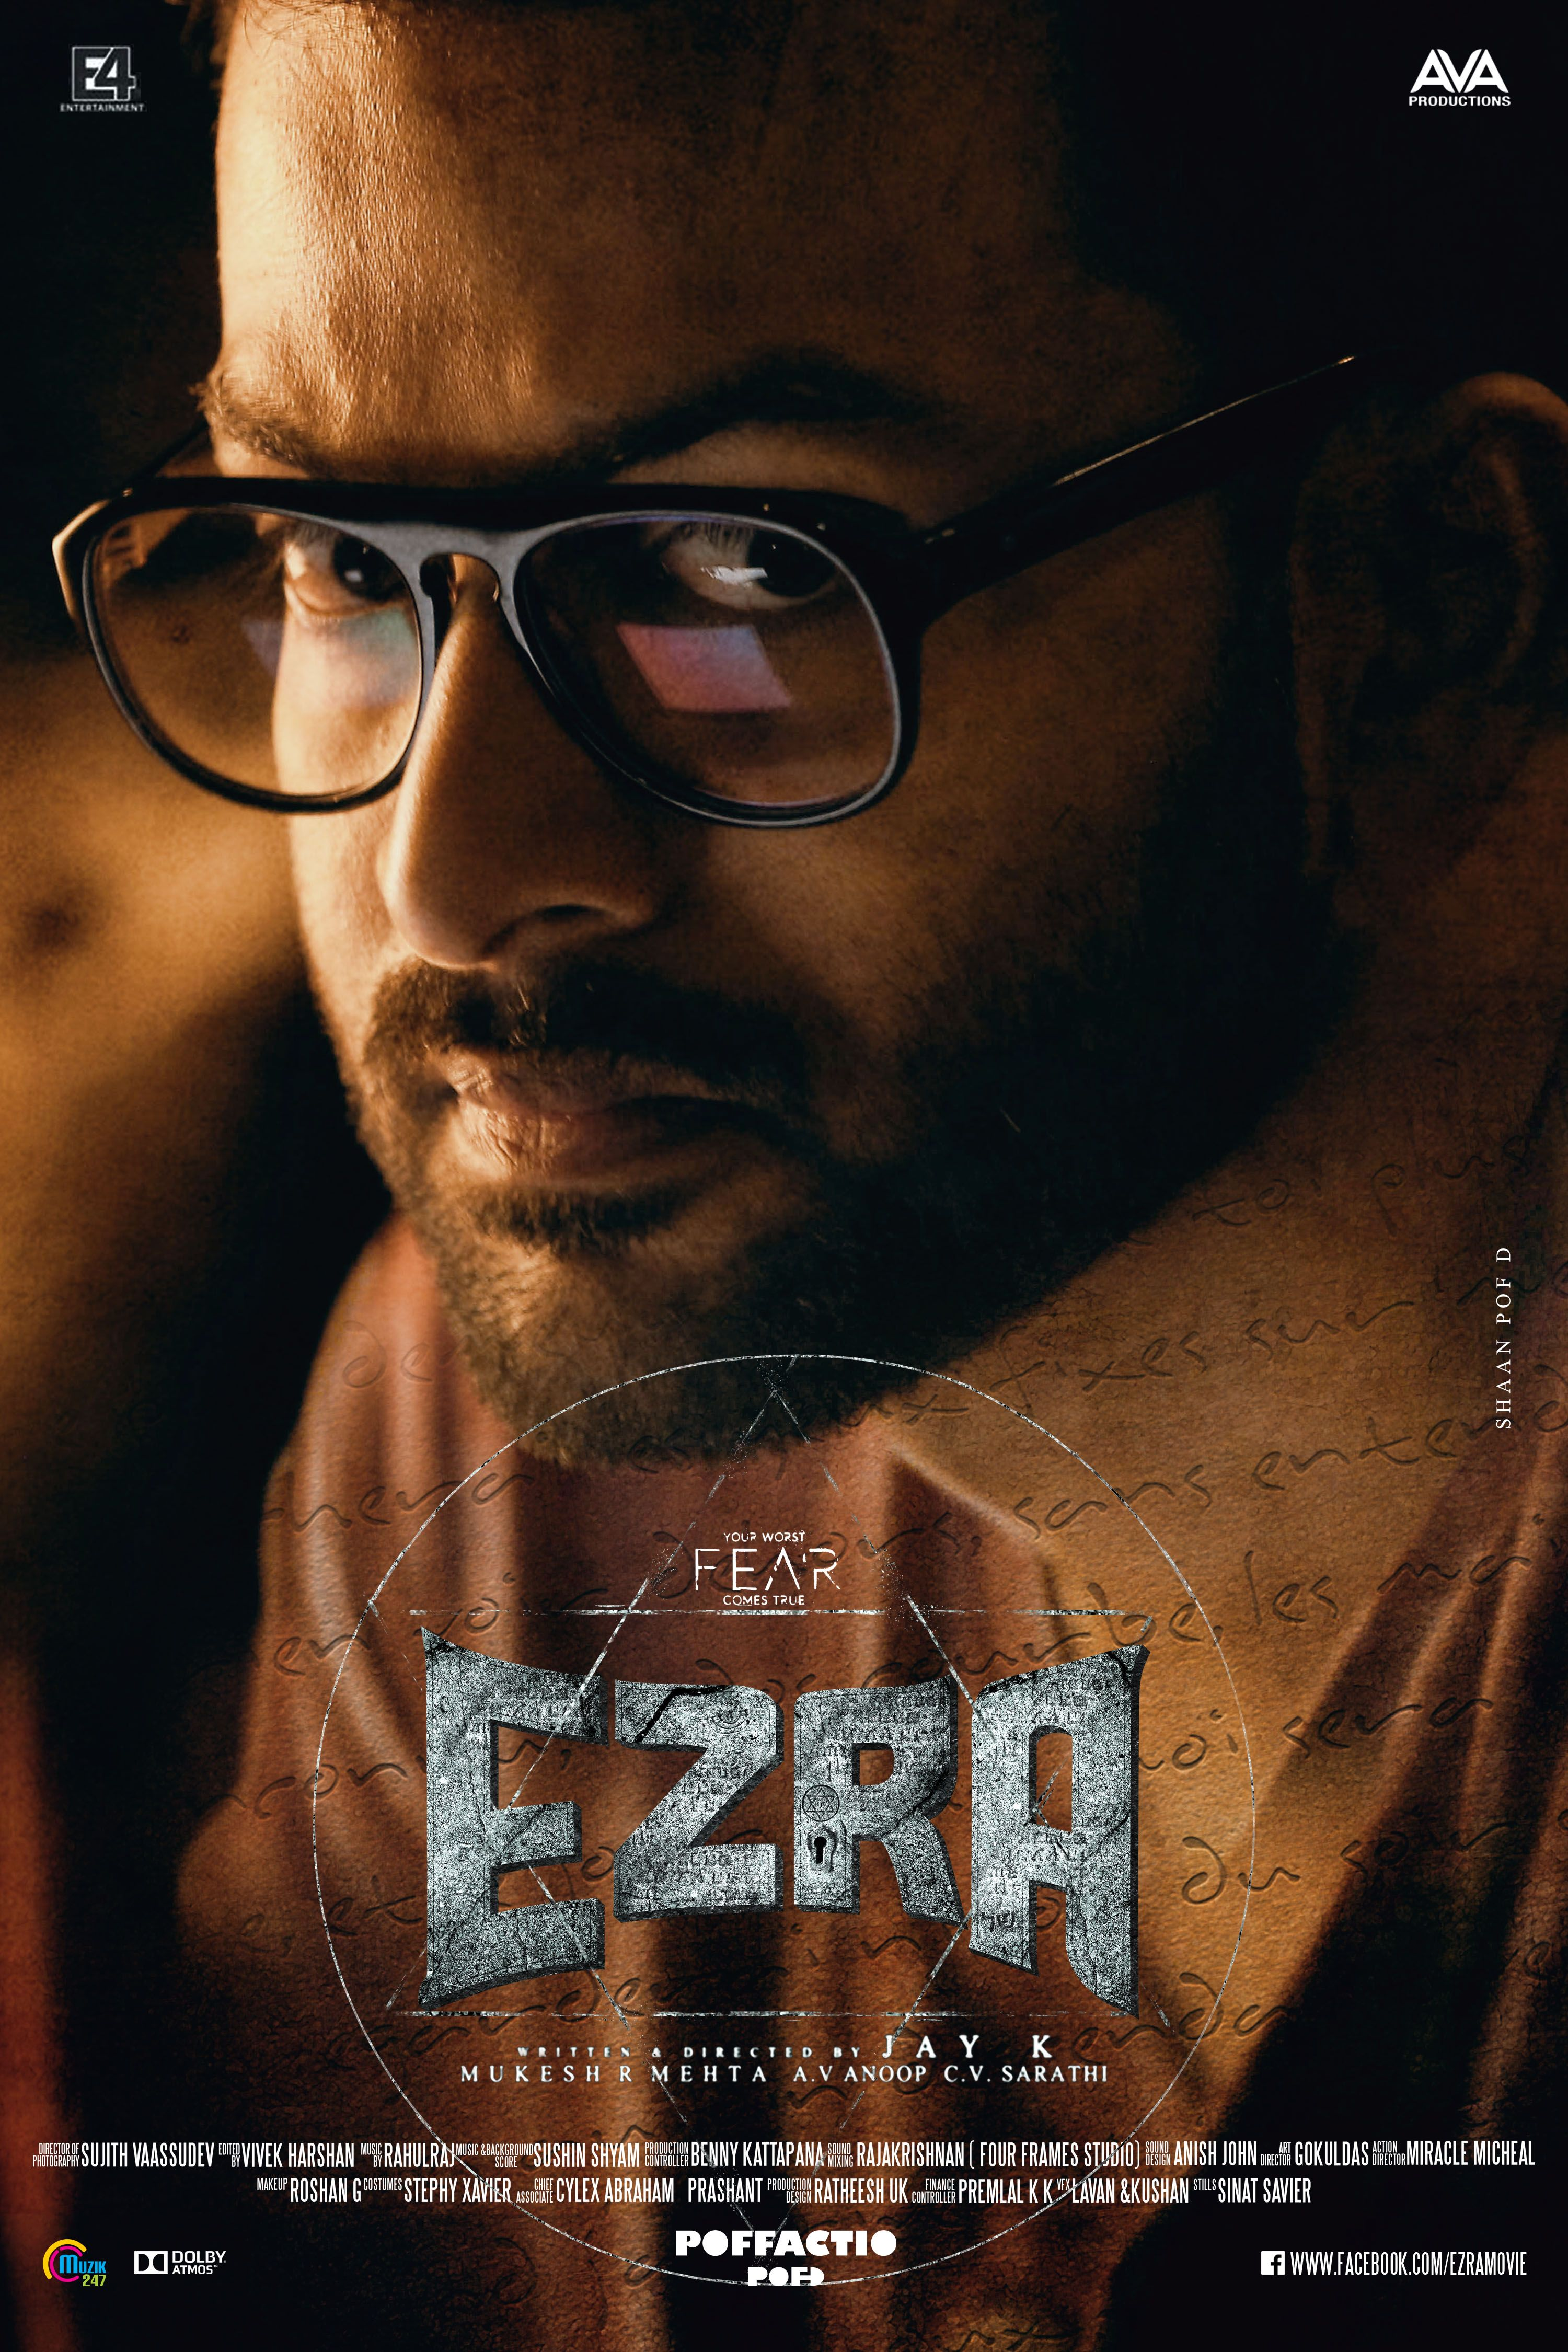 Pin by Shaan Thomas on Ezra | Free films online, Full movies